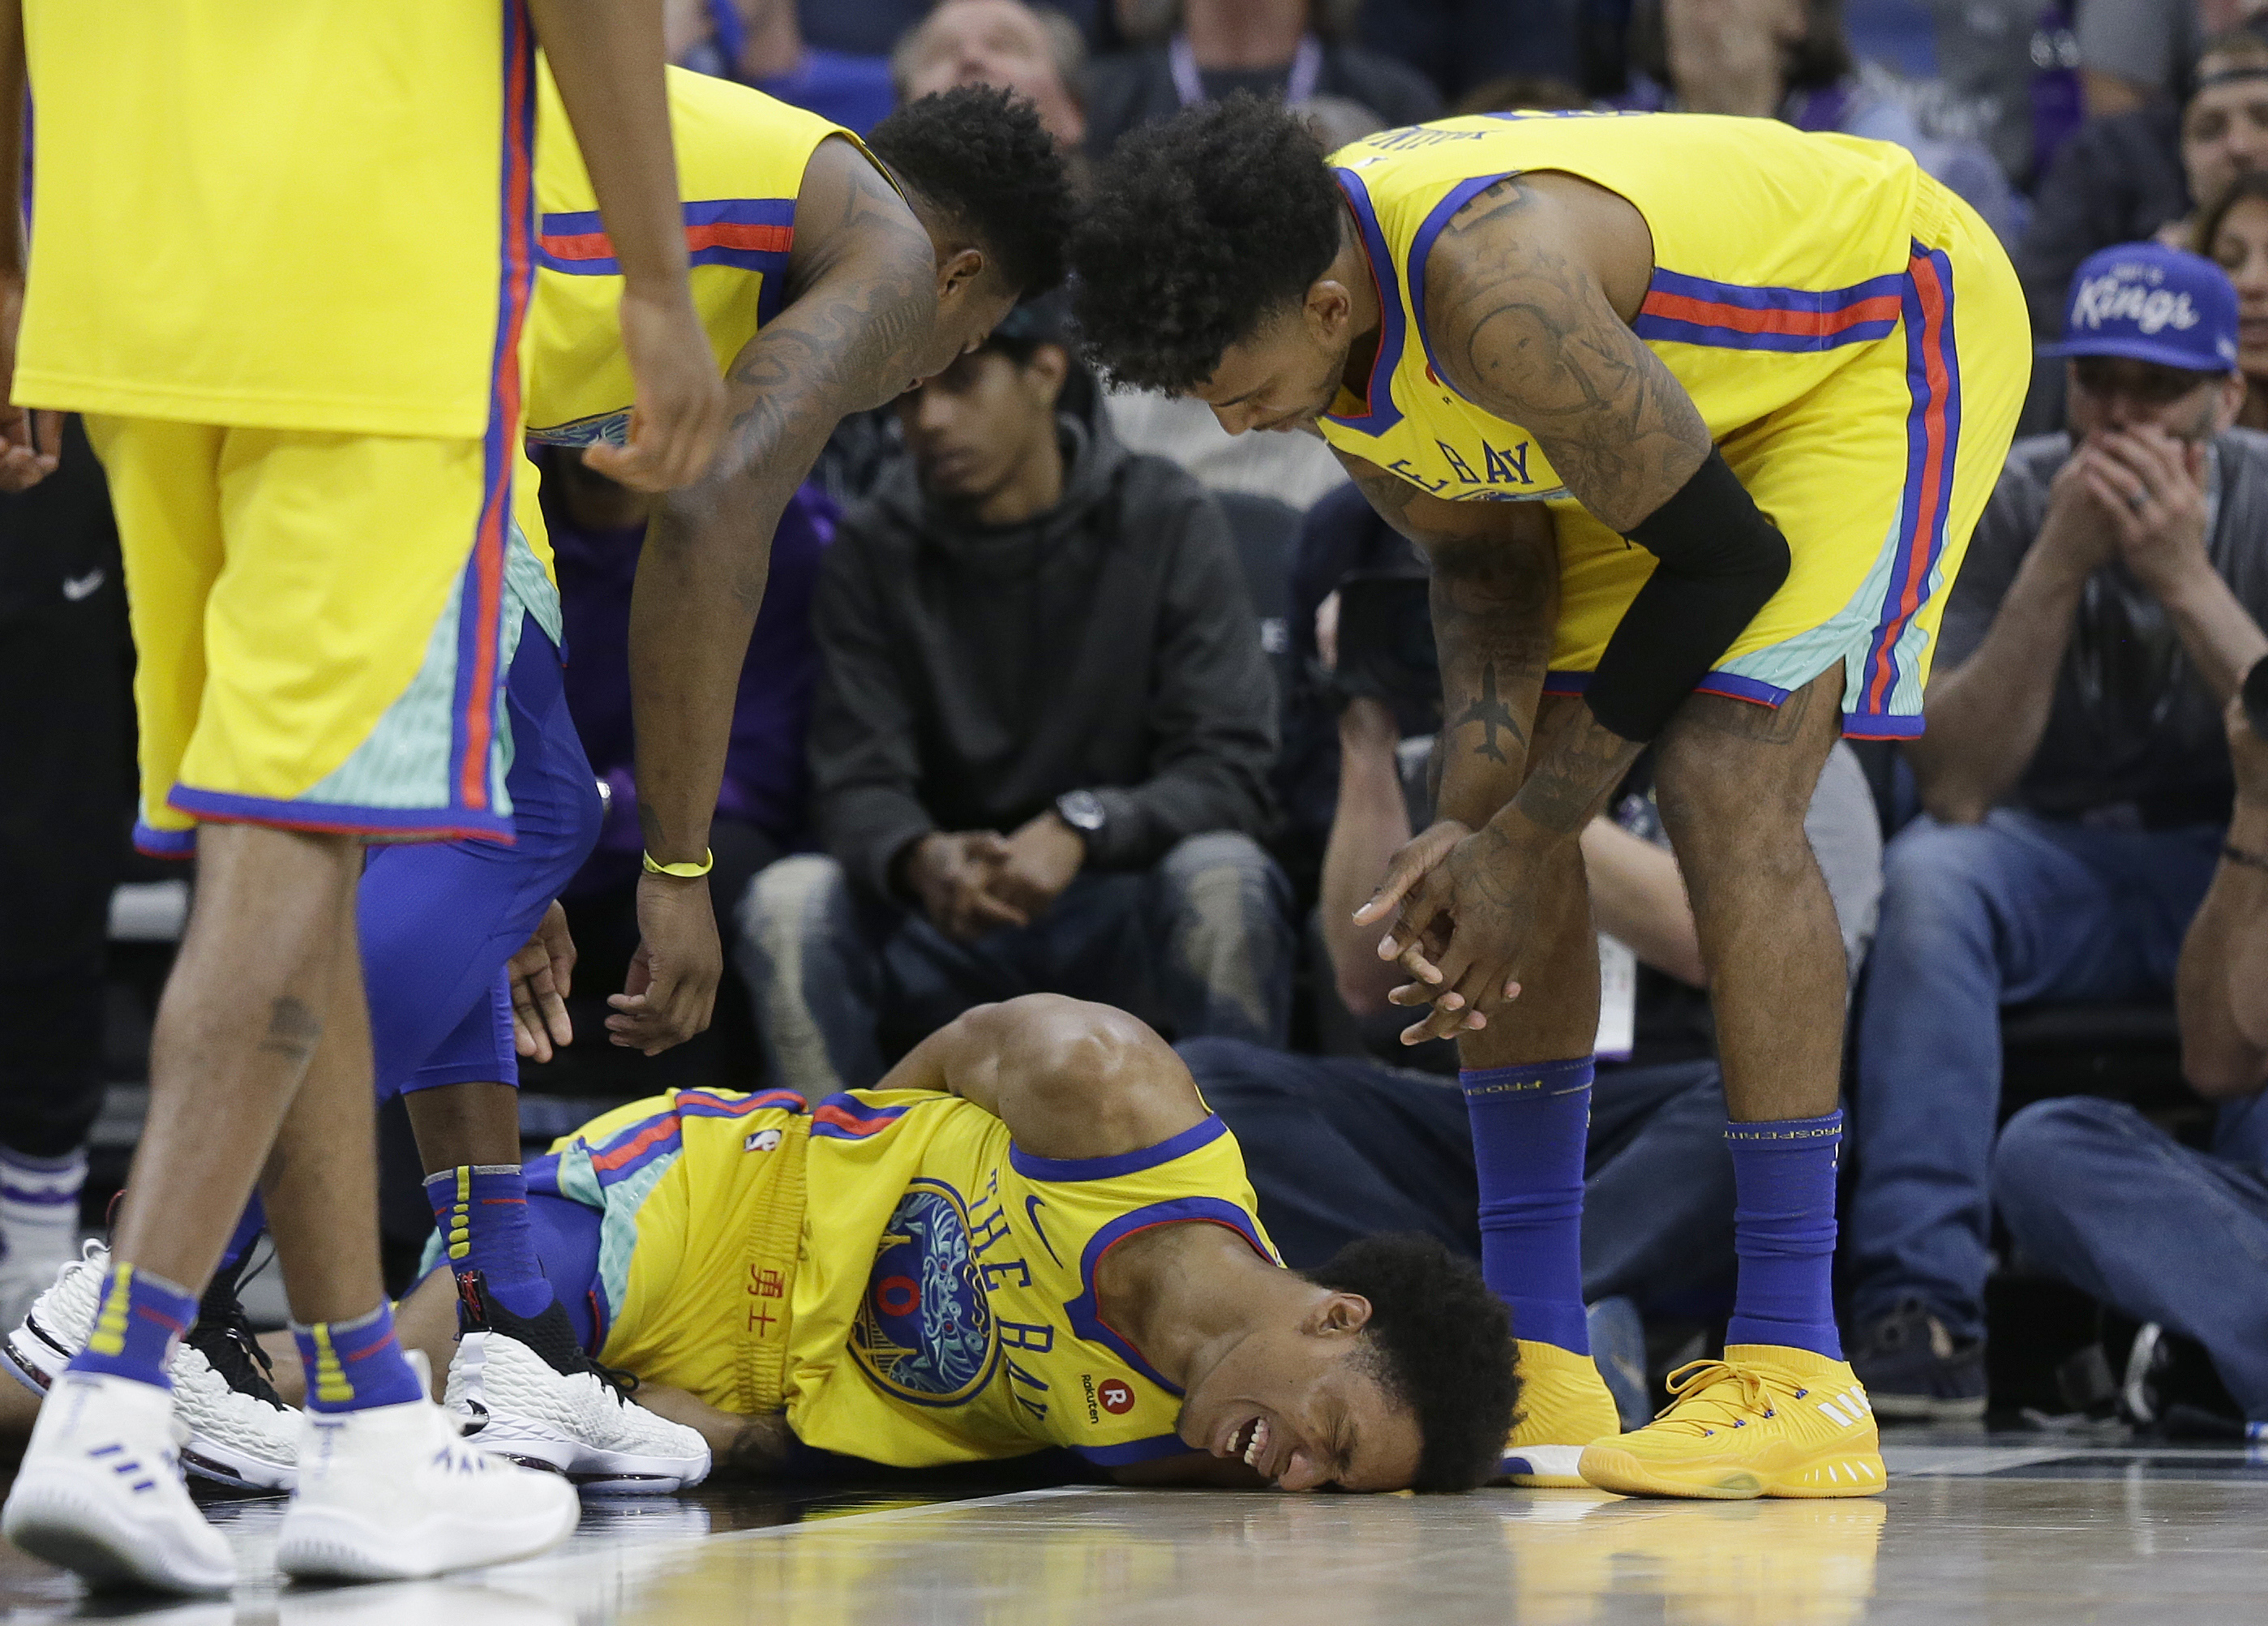 Warriors' Patrick McCaw Stretchered Off Court After Injury in Kings Game